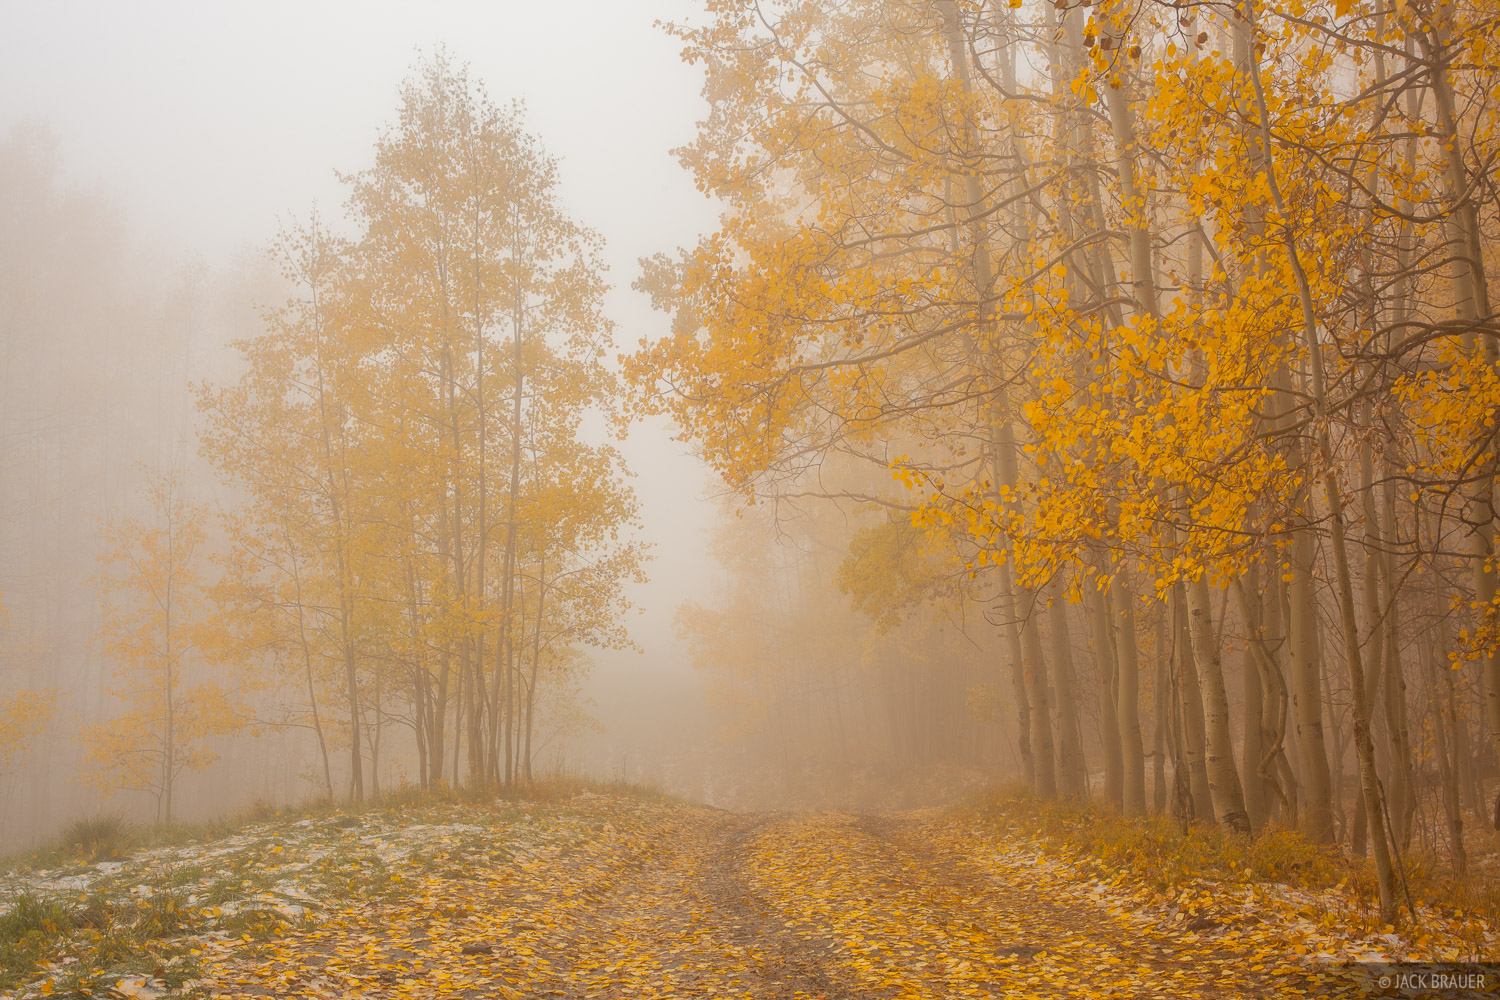 Colorado,San Juan Mountains,aspens,autumn,fall, foggy, Last Dollar Road, photo